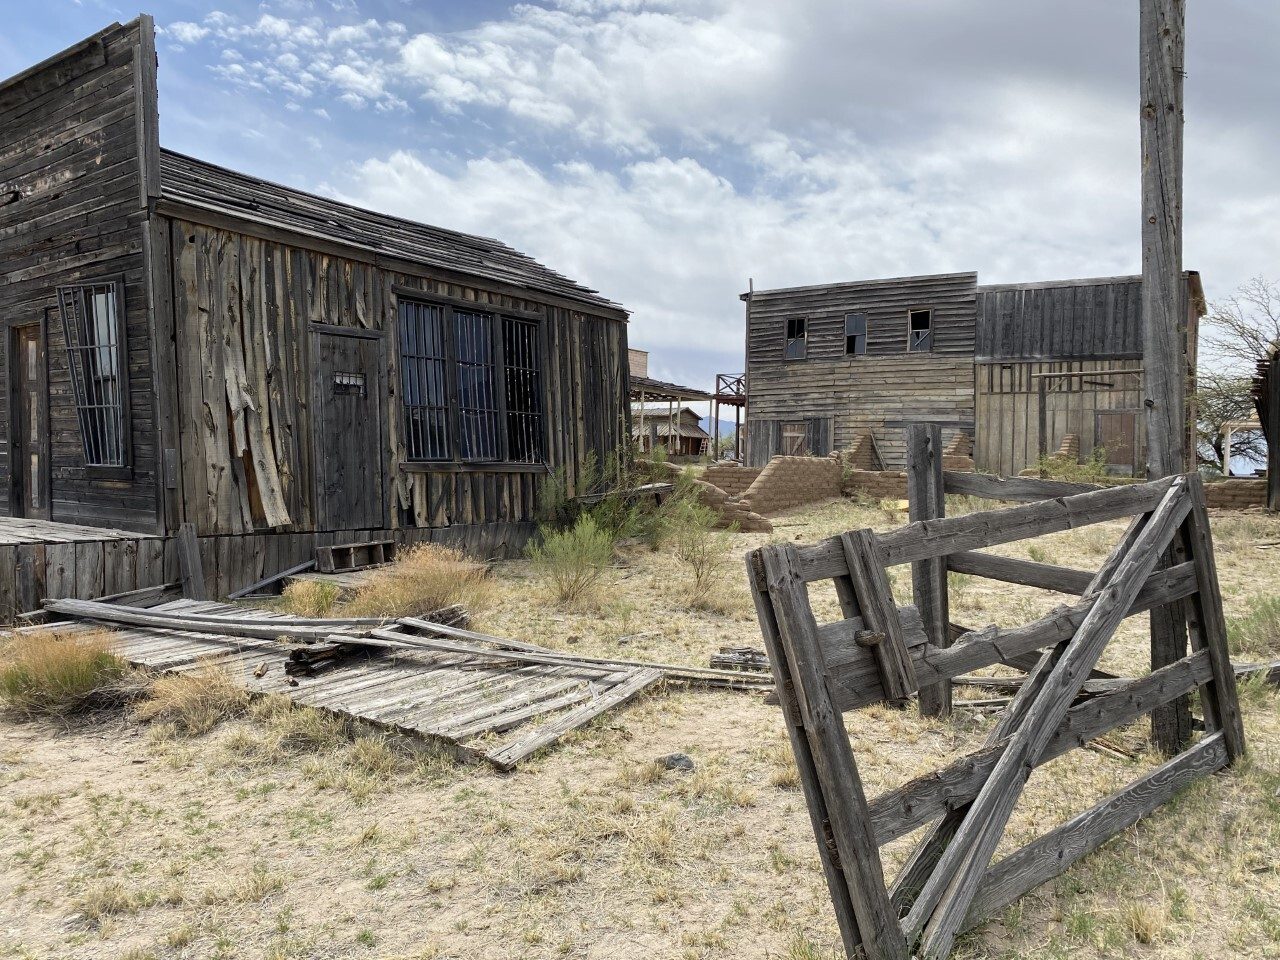 Site of the Gunfight at the OK Corral scene in the film Tombstone